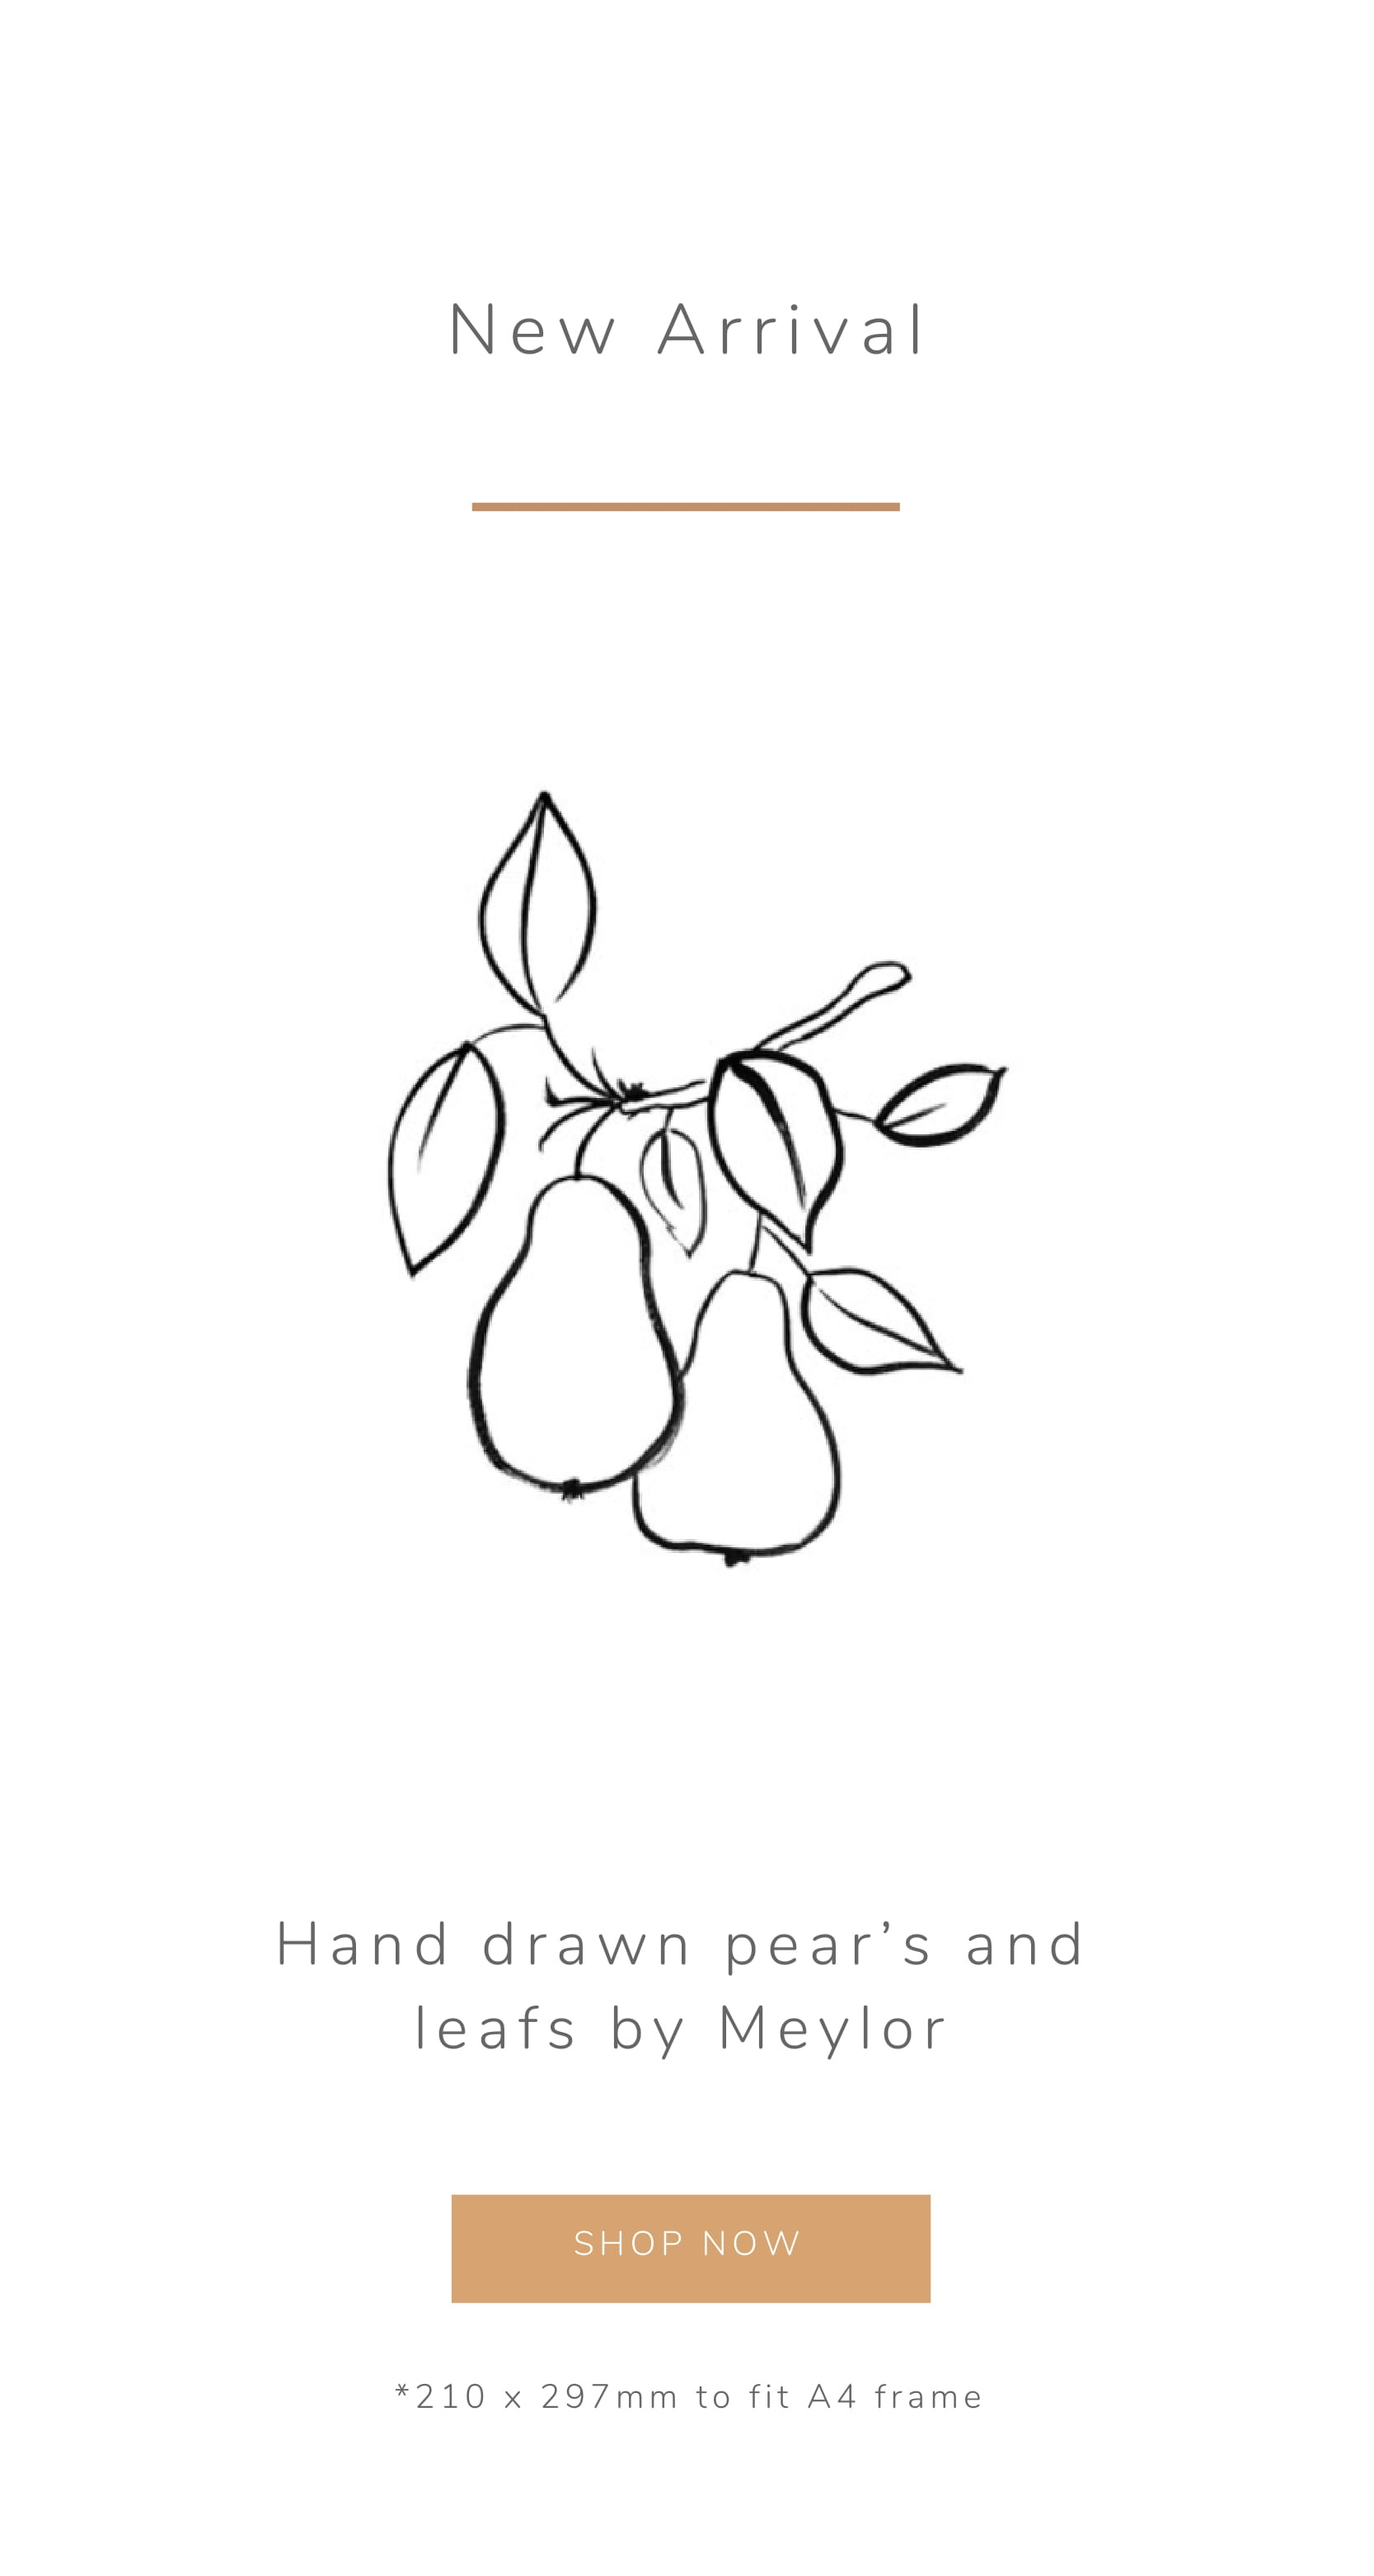 Prints, fashion, pears, frame